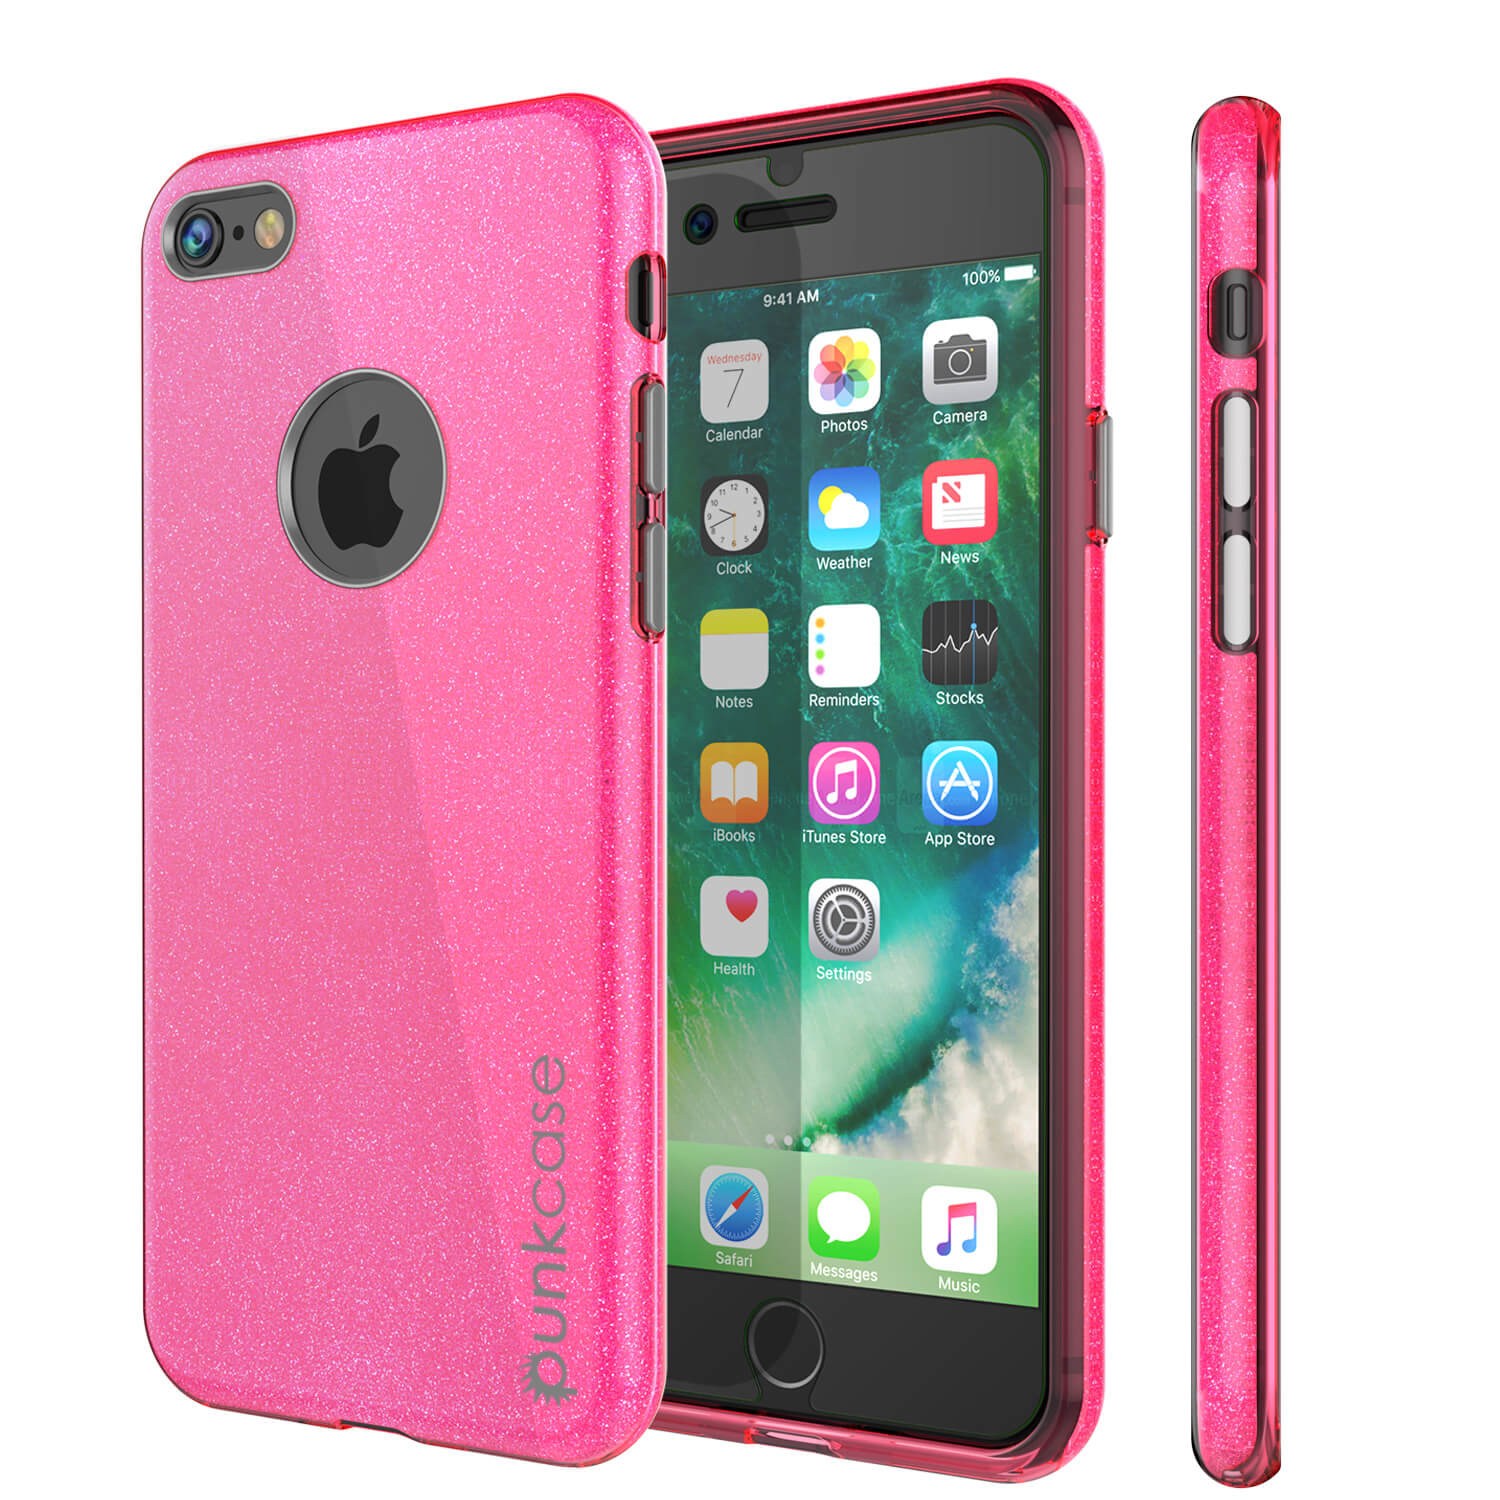 iPhone 6s/6 Case PunkCase Galactic Pink Series  Slim w/ Tempered Glass | Lifetime Warranty